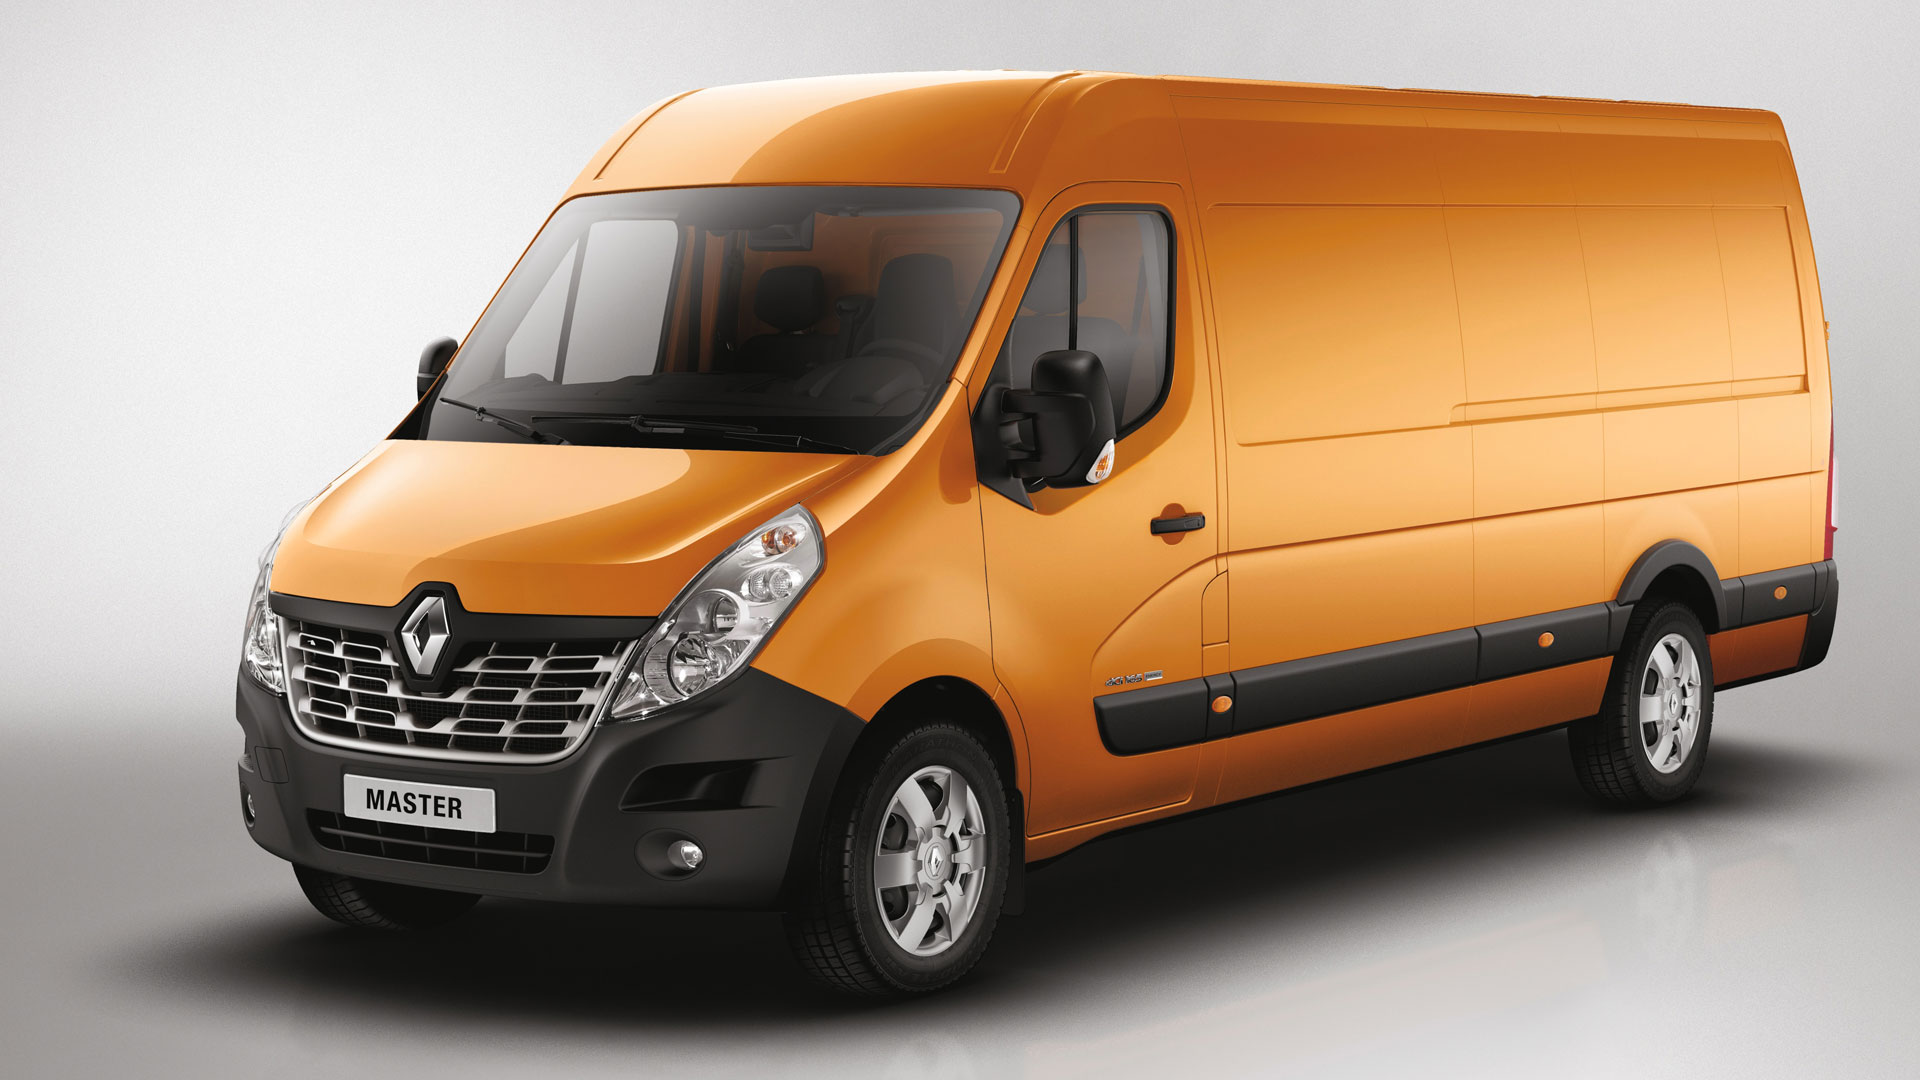 2015 renault master iii pictures information and specs. Black Bedroom Furniture Sets. Home Design Ideas